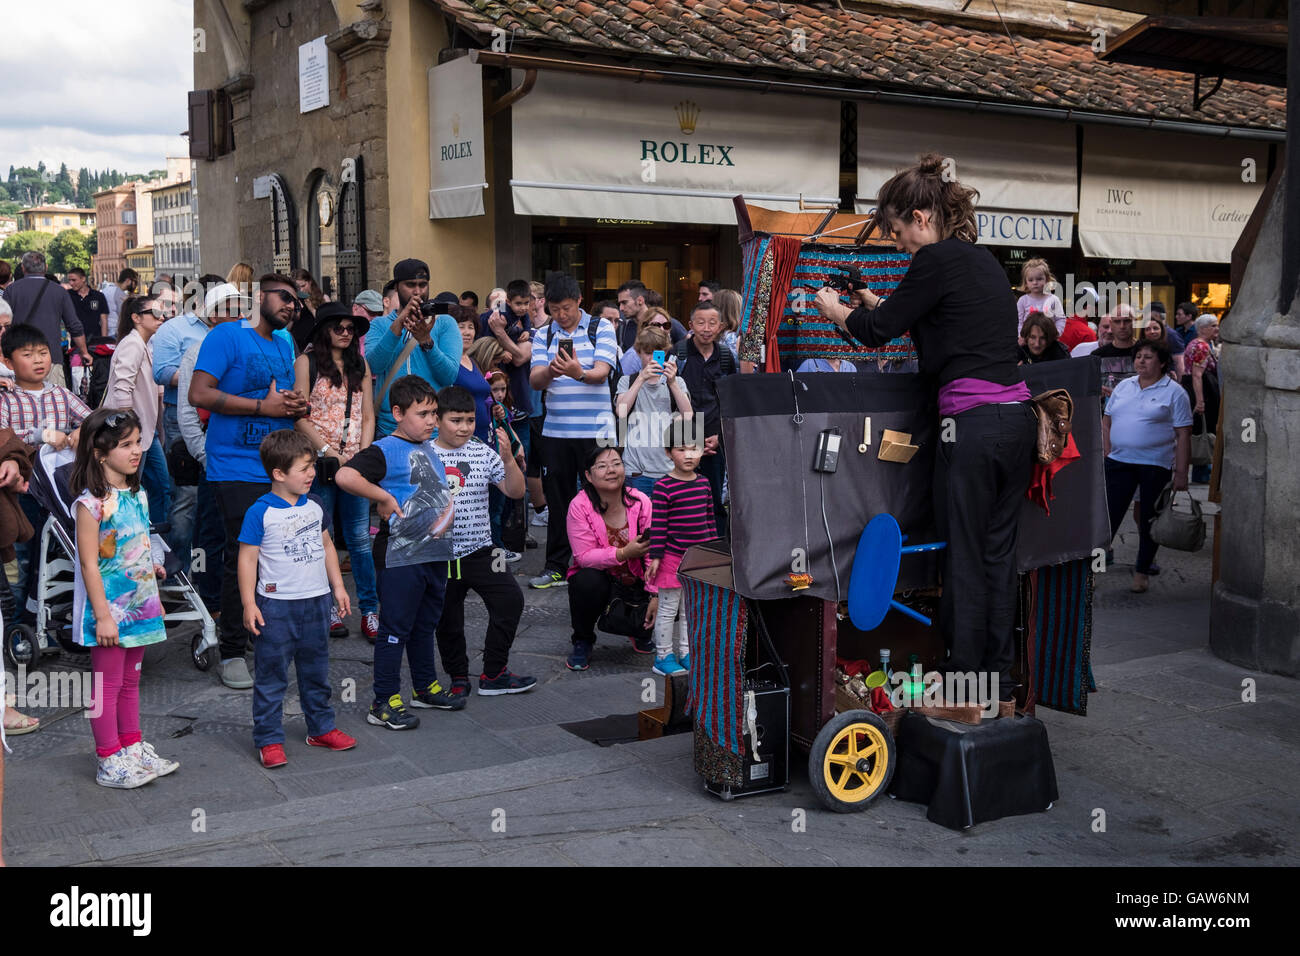 Crowds of tourists and kids watching a puppeteer on the Ponte Vecchio bridge in Florence, Tuscany, italy - Stock Image